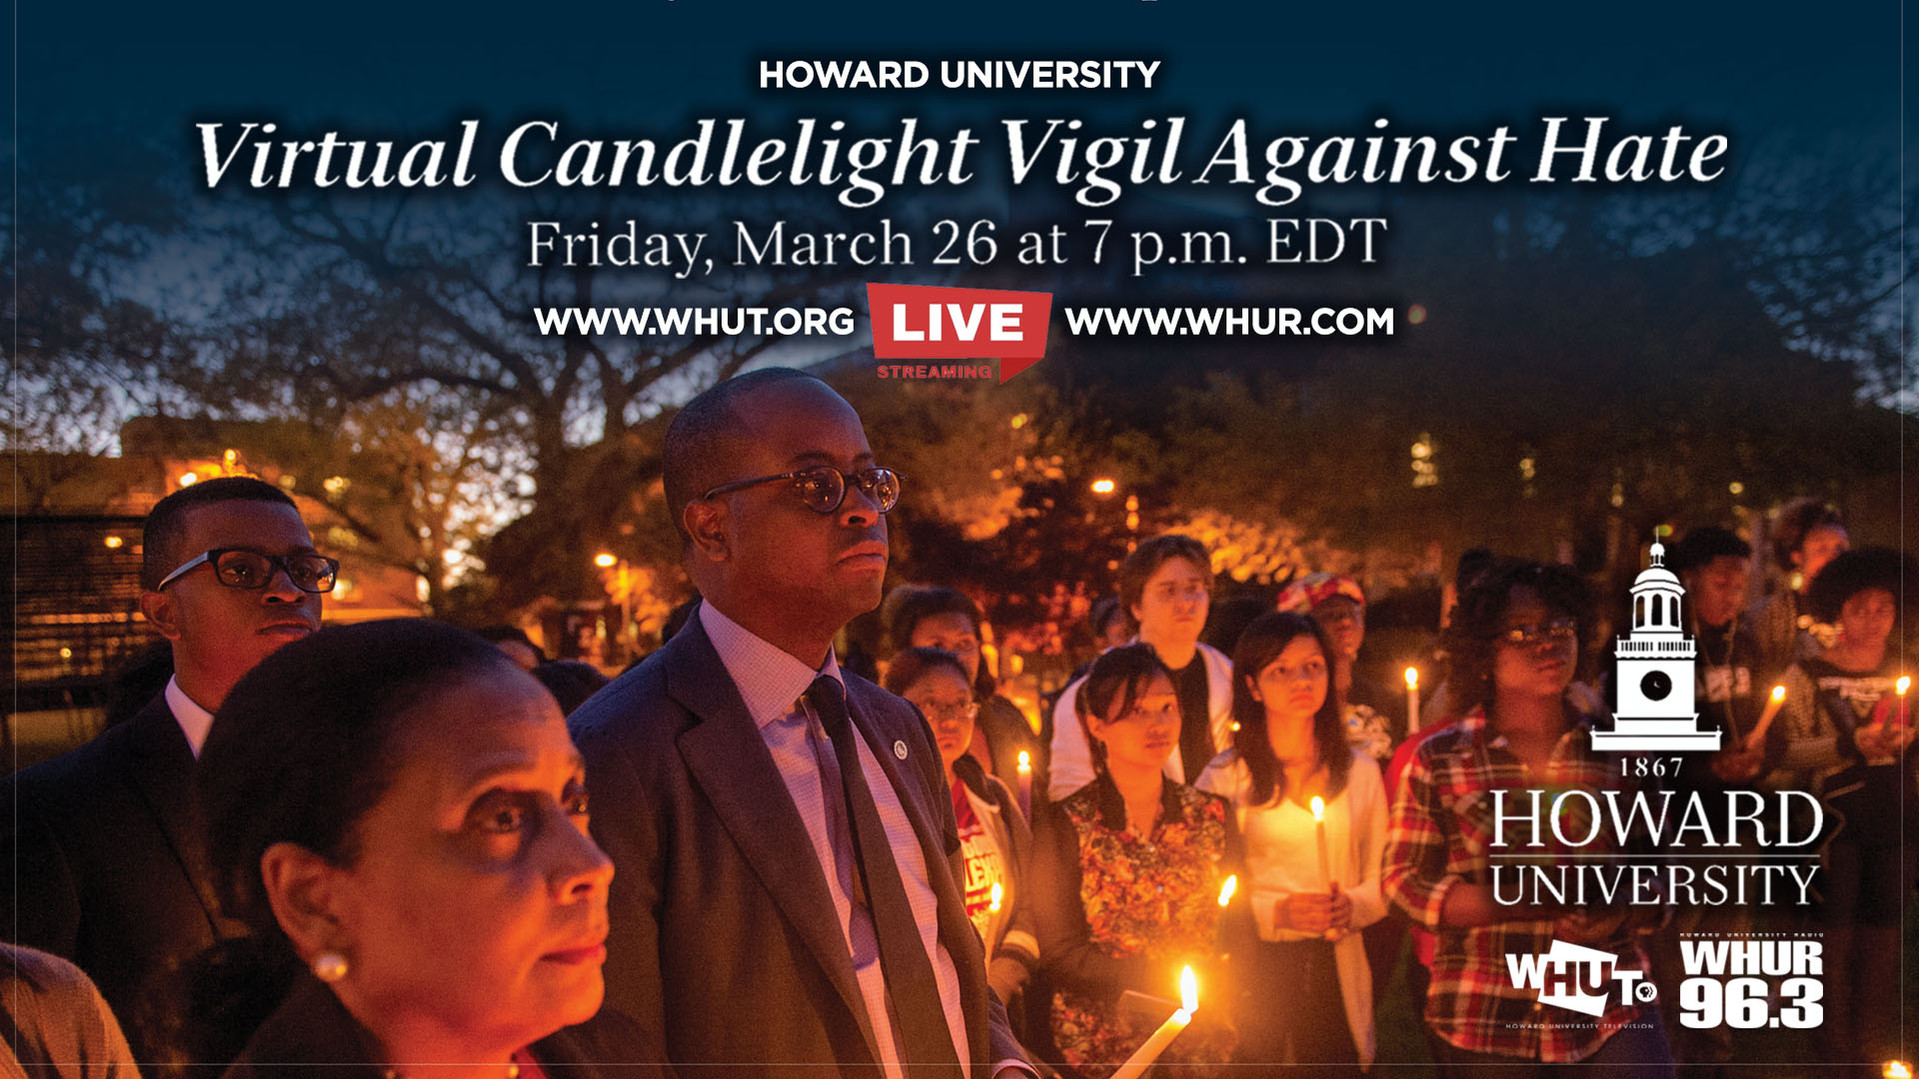 Virtual Candlelight Vigil Against Hate